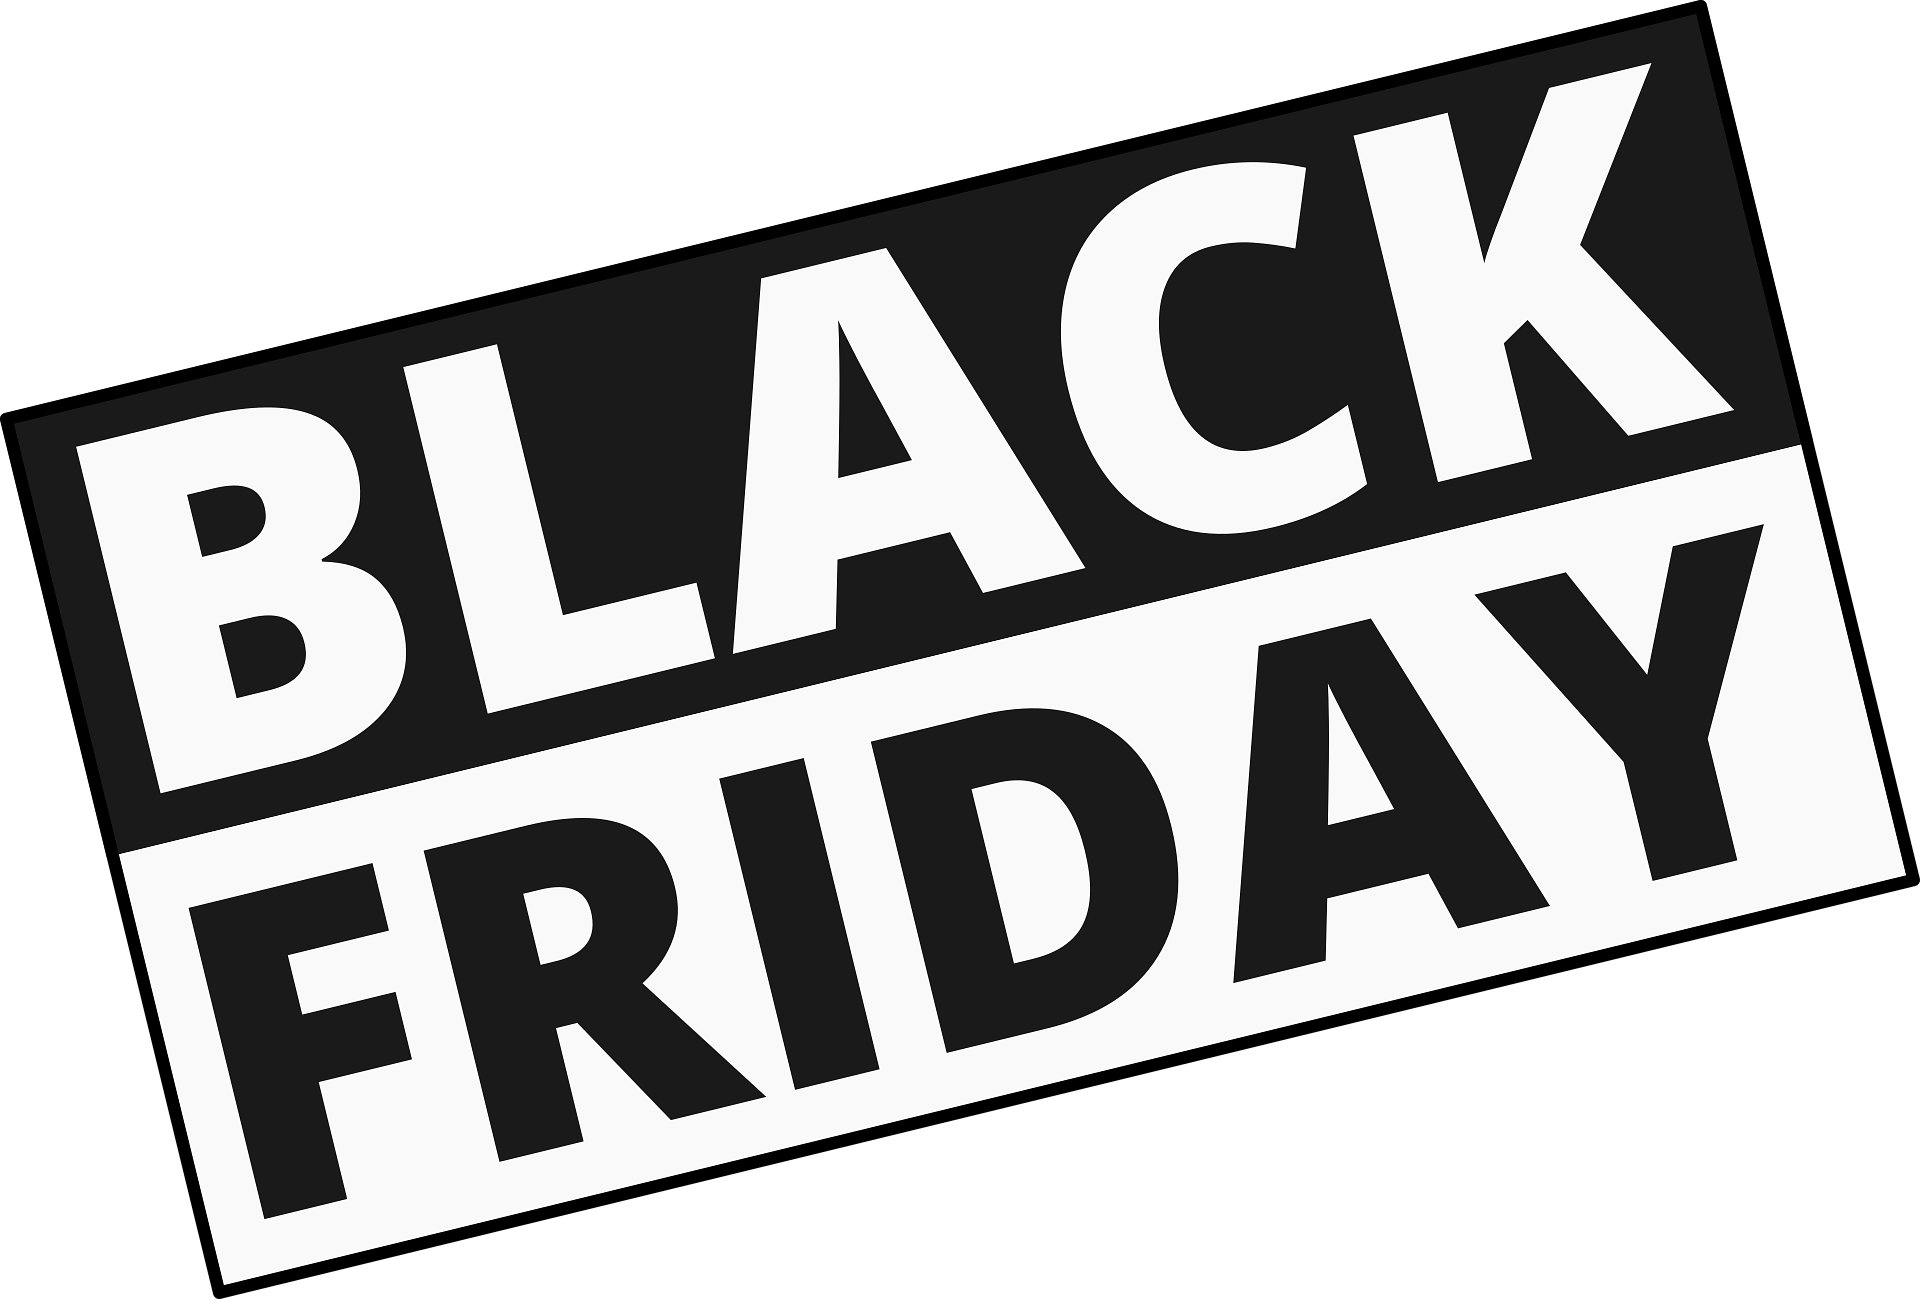 Black Friday is Friday, November 29. Check back soon for the best Black Friday deals for mountain bikers